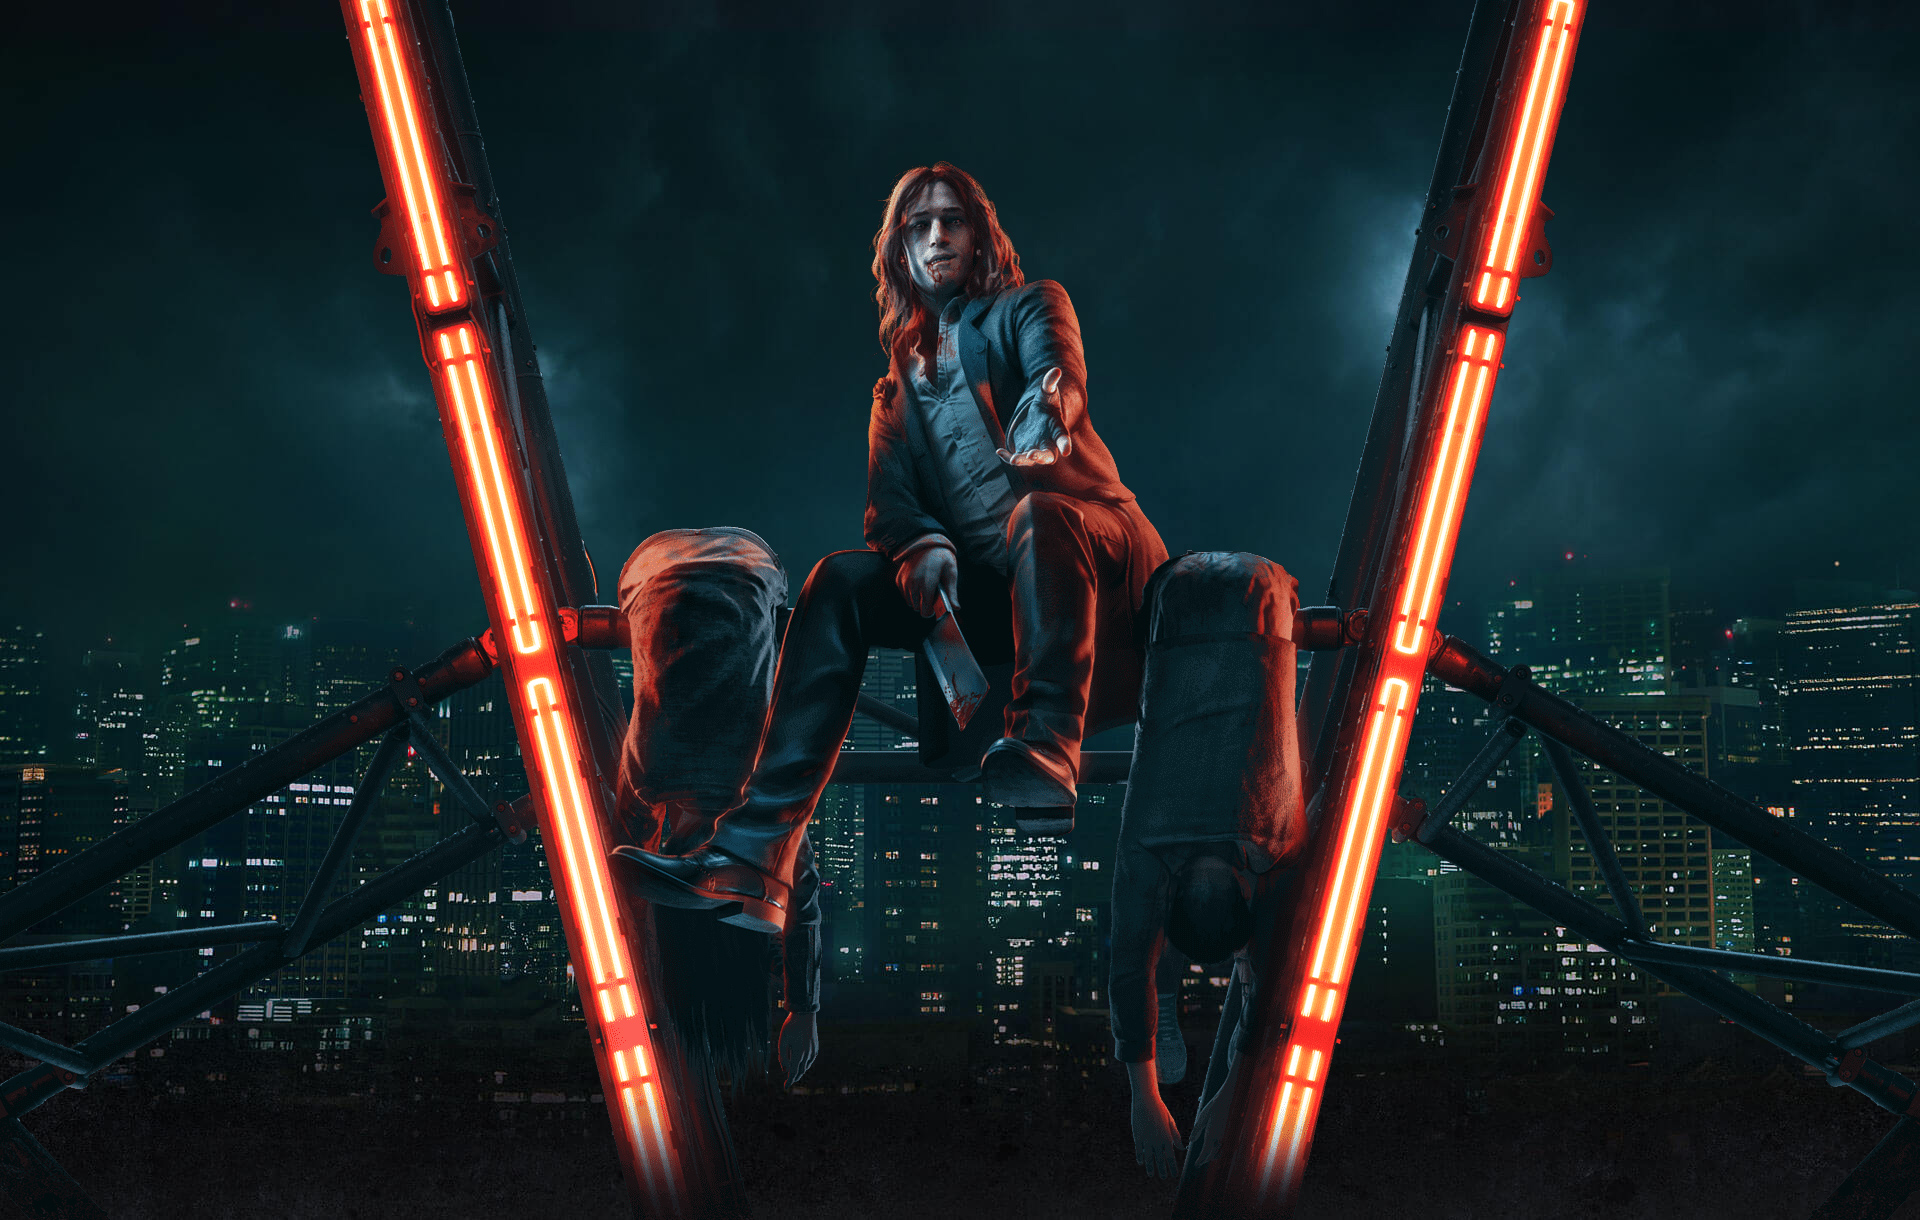 Vampire The Masquerade Bloodlines 2 HD, HD Games, 4k ...